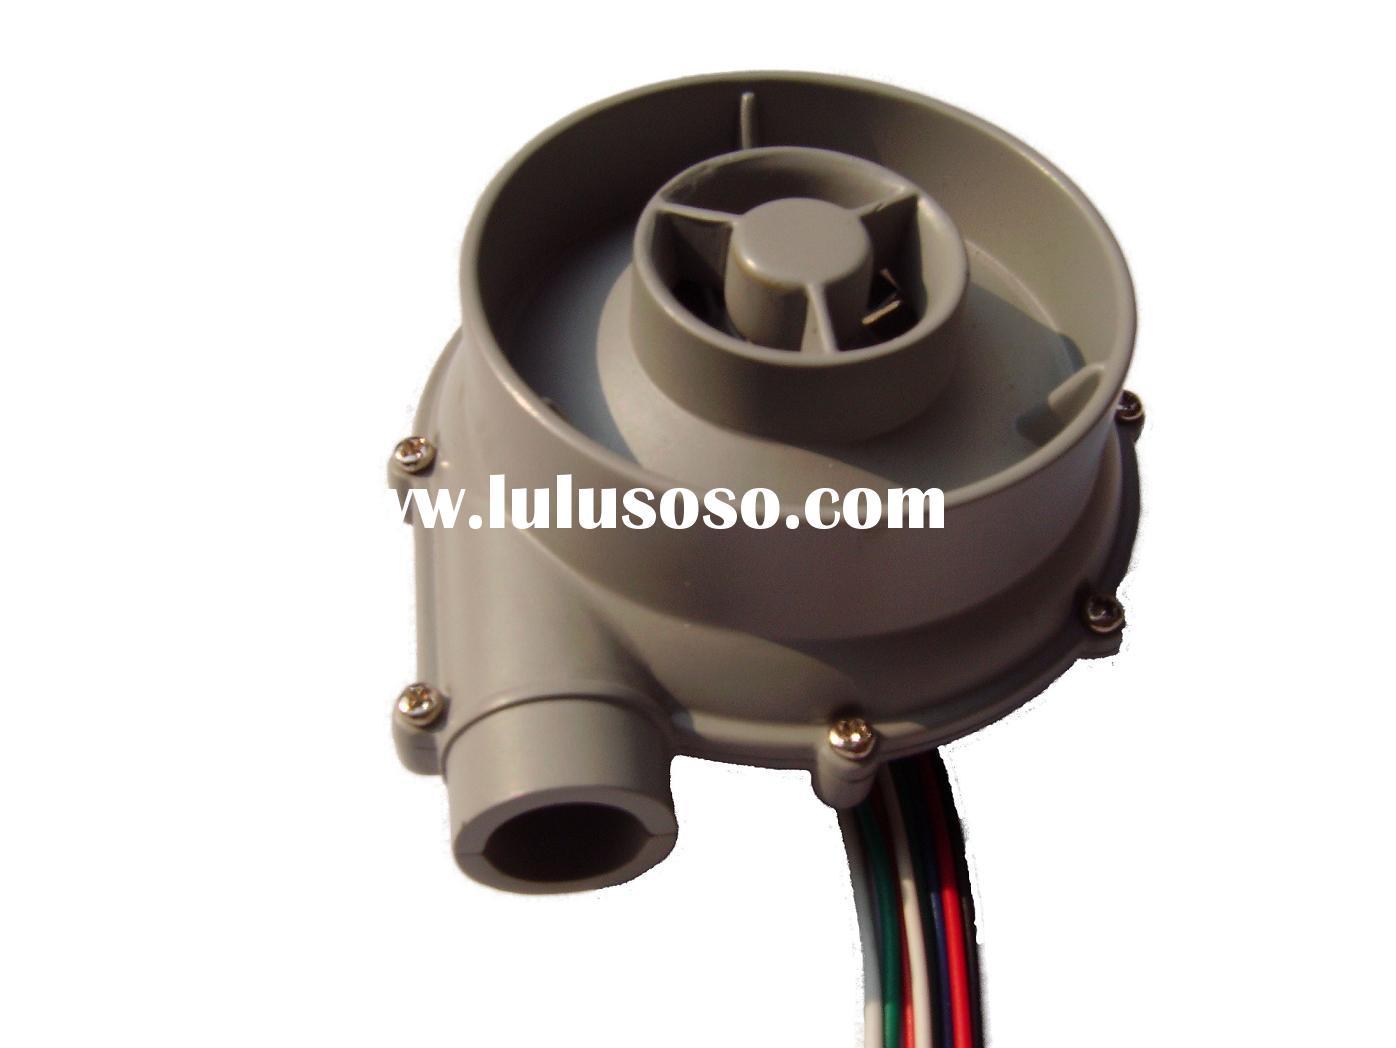 Small Air Blowers : Mini air blower manufacturers in lulusoso